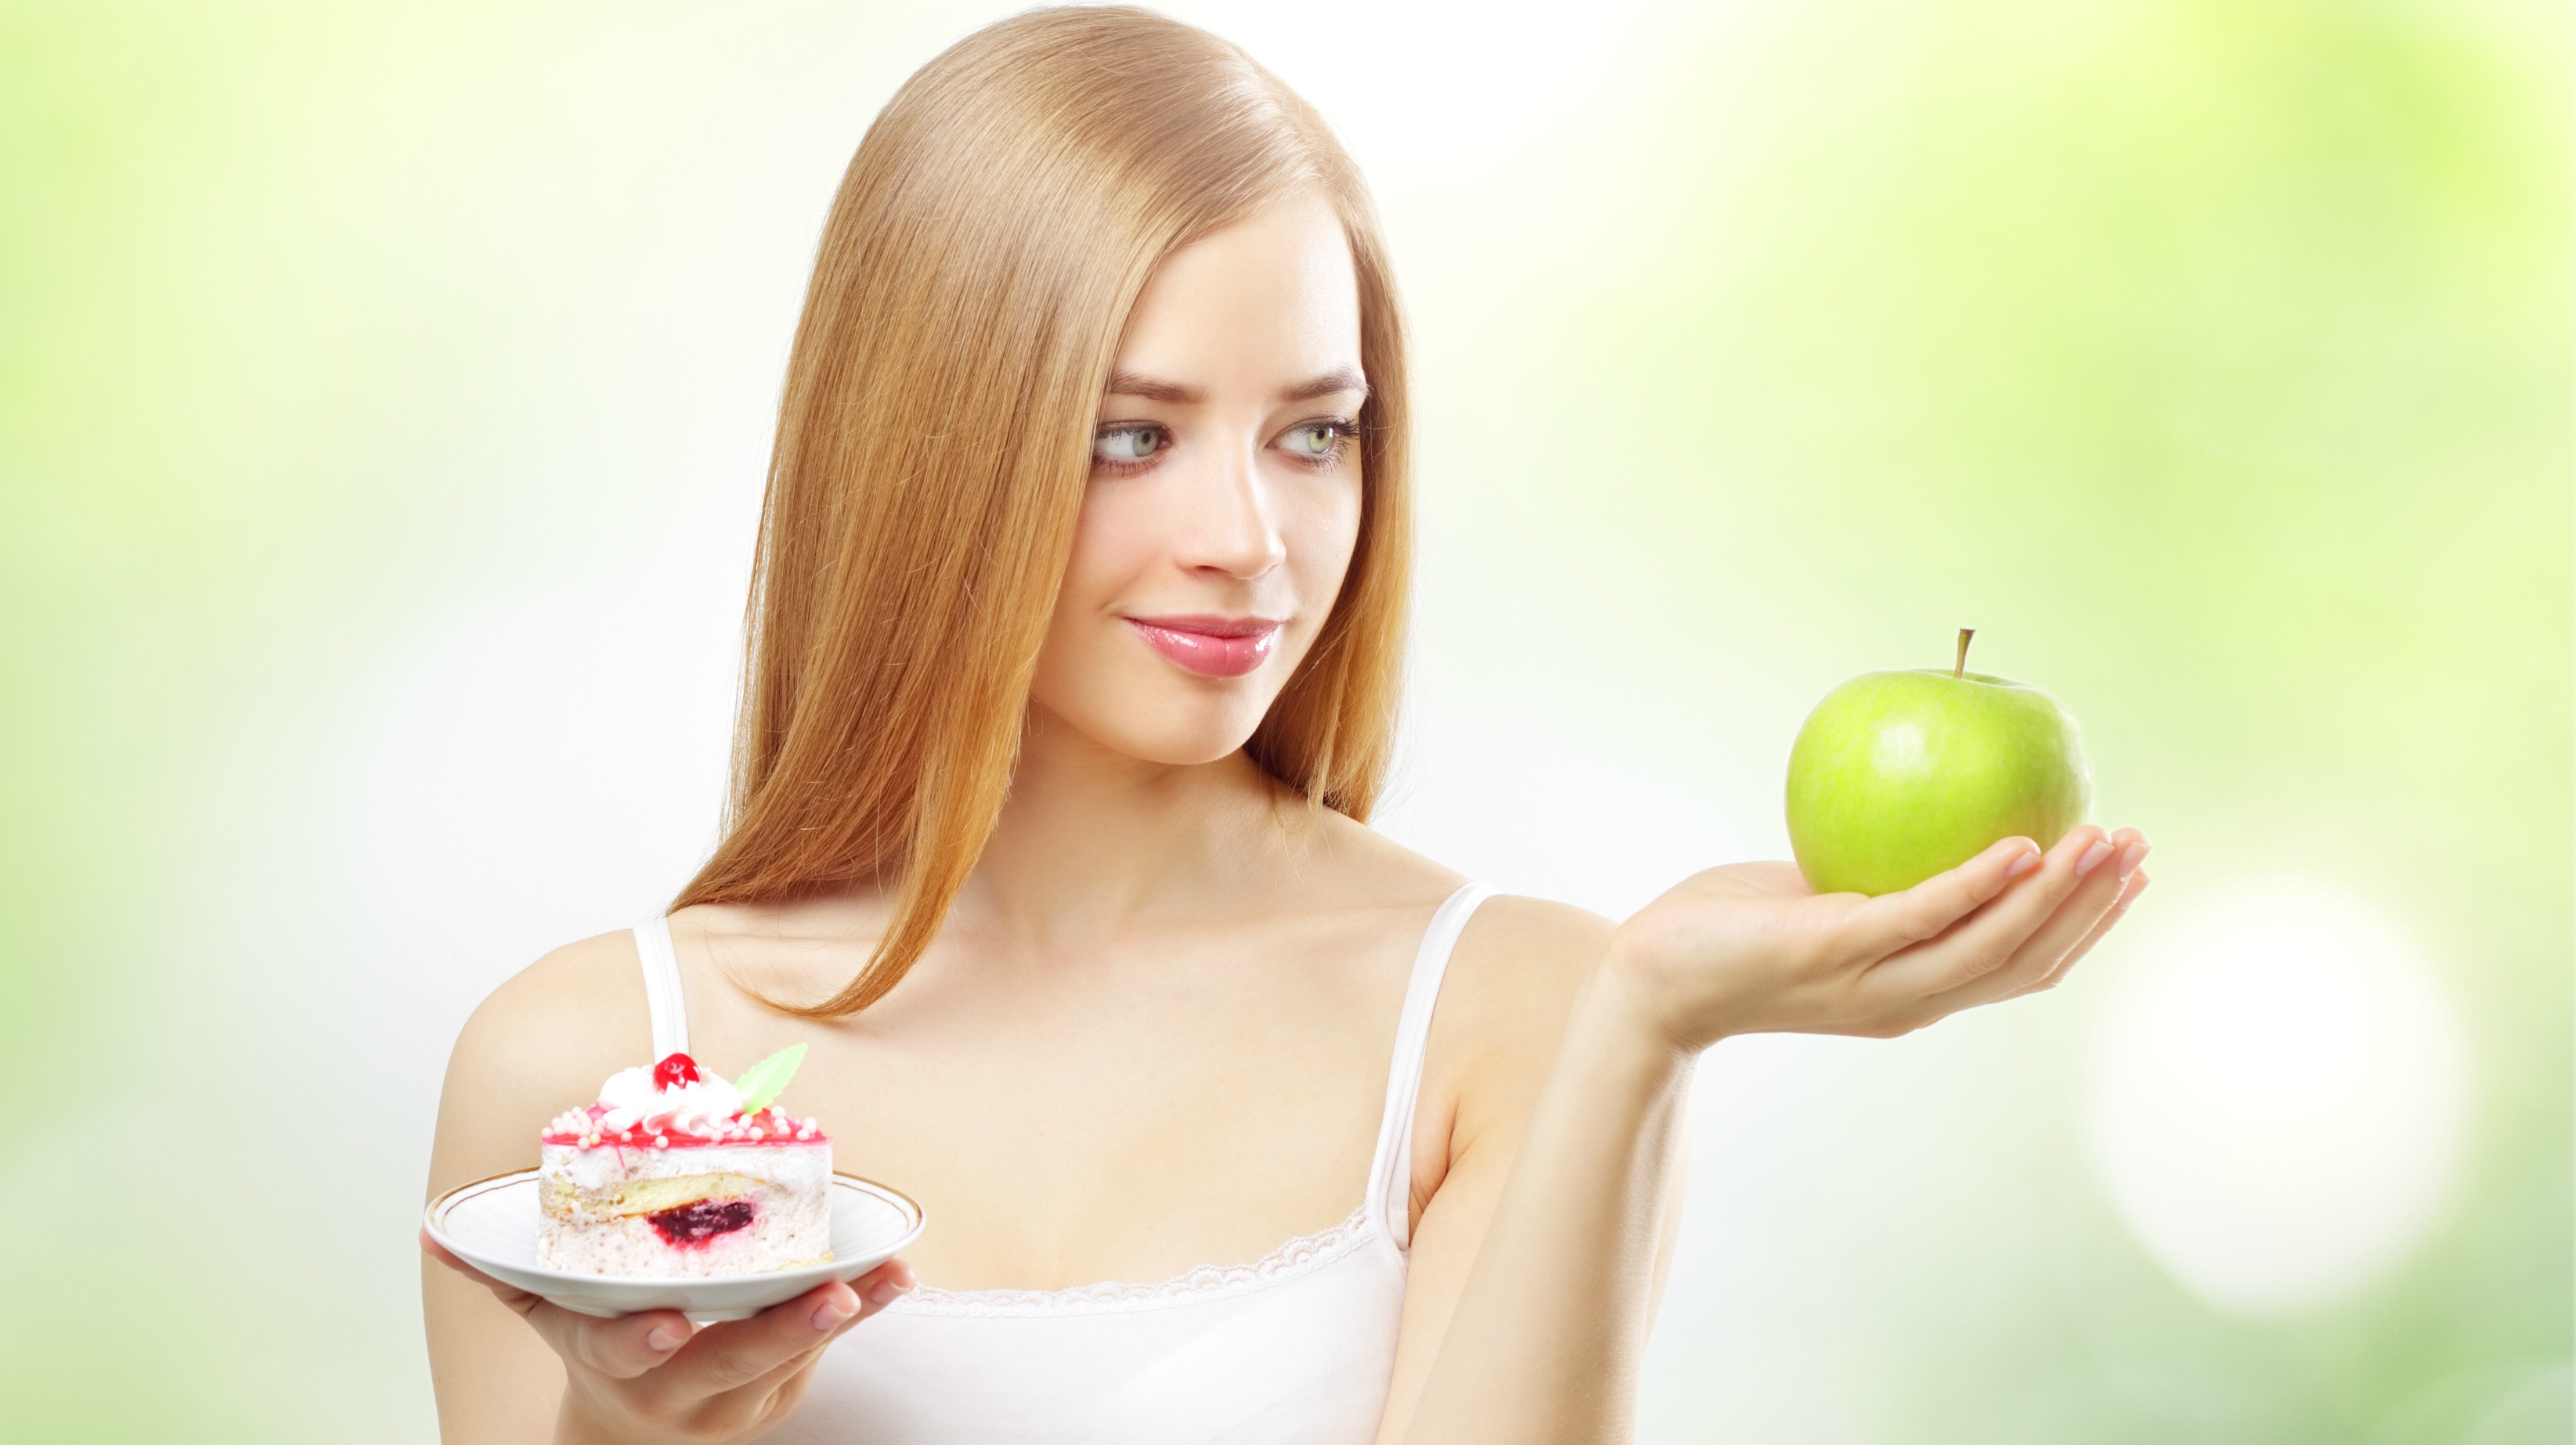 girl holding a cake and apple on a light background